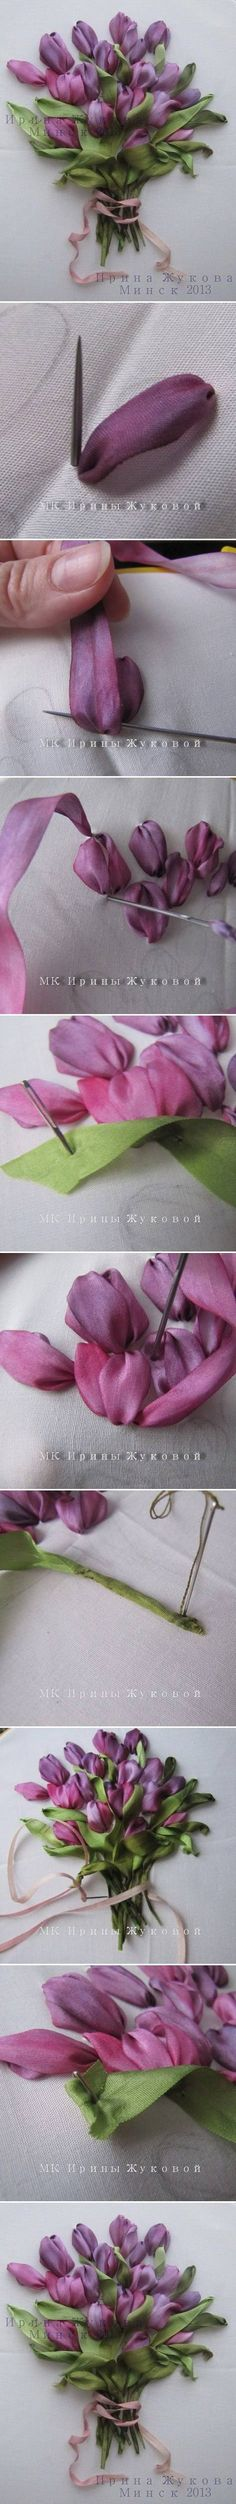 DIY Embroidery Ribbon Flower DIY Projects | UsefulDIY.com